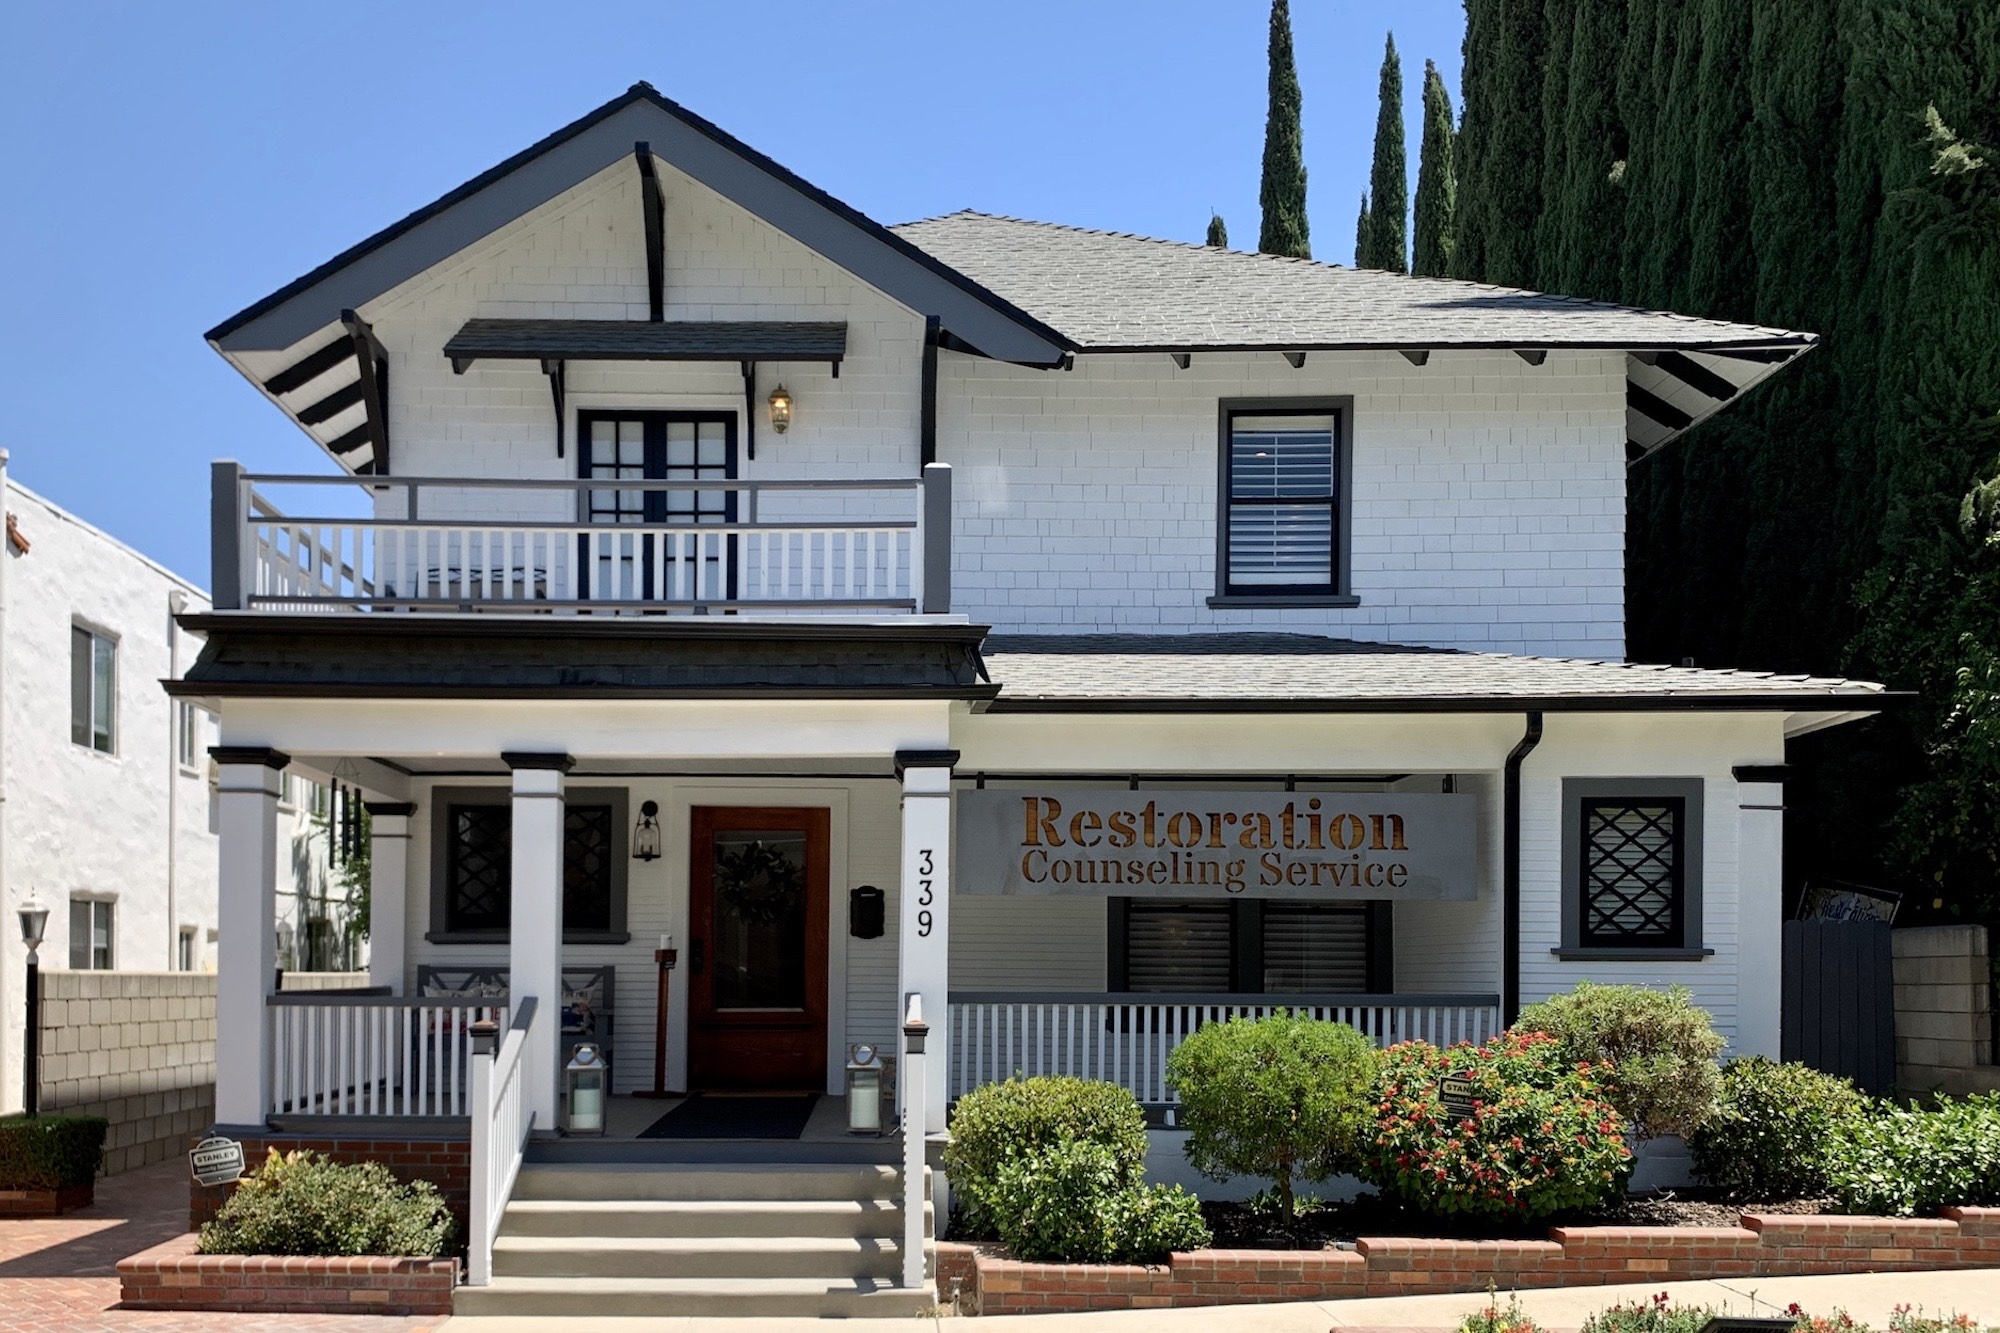 our Redlands counseling home